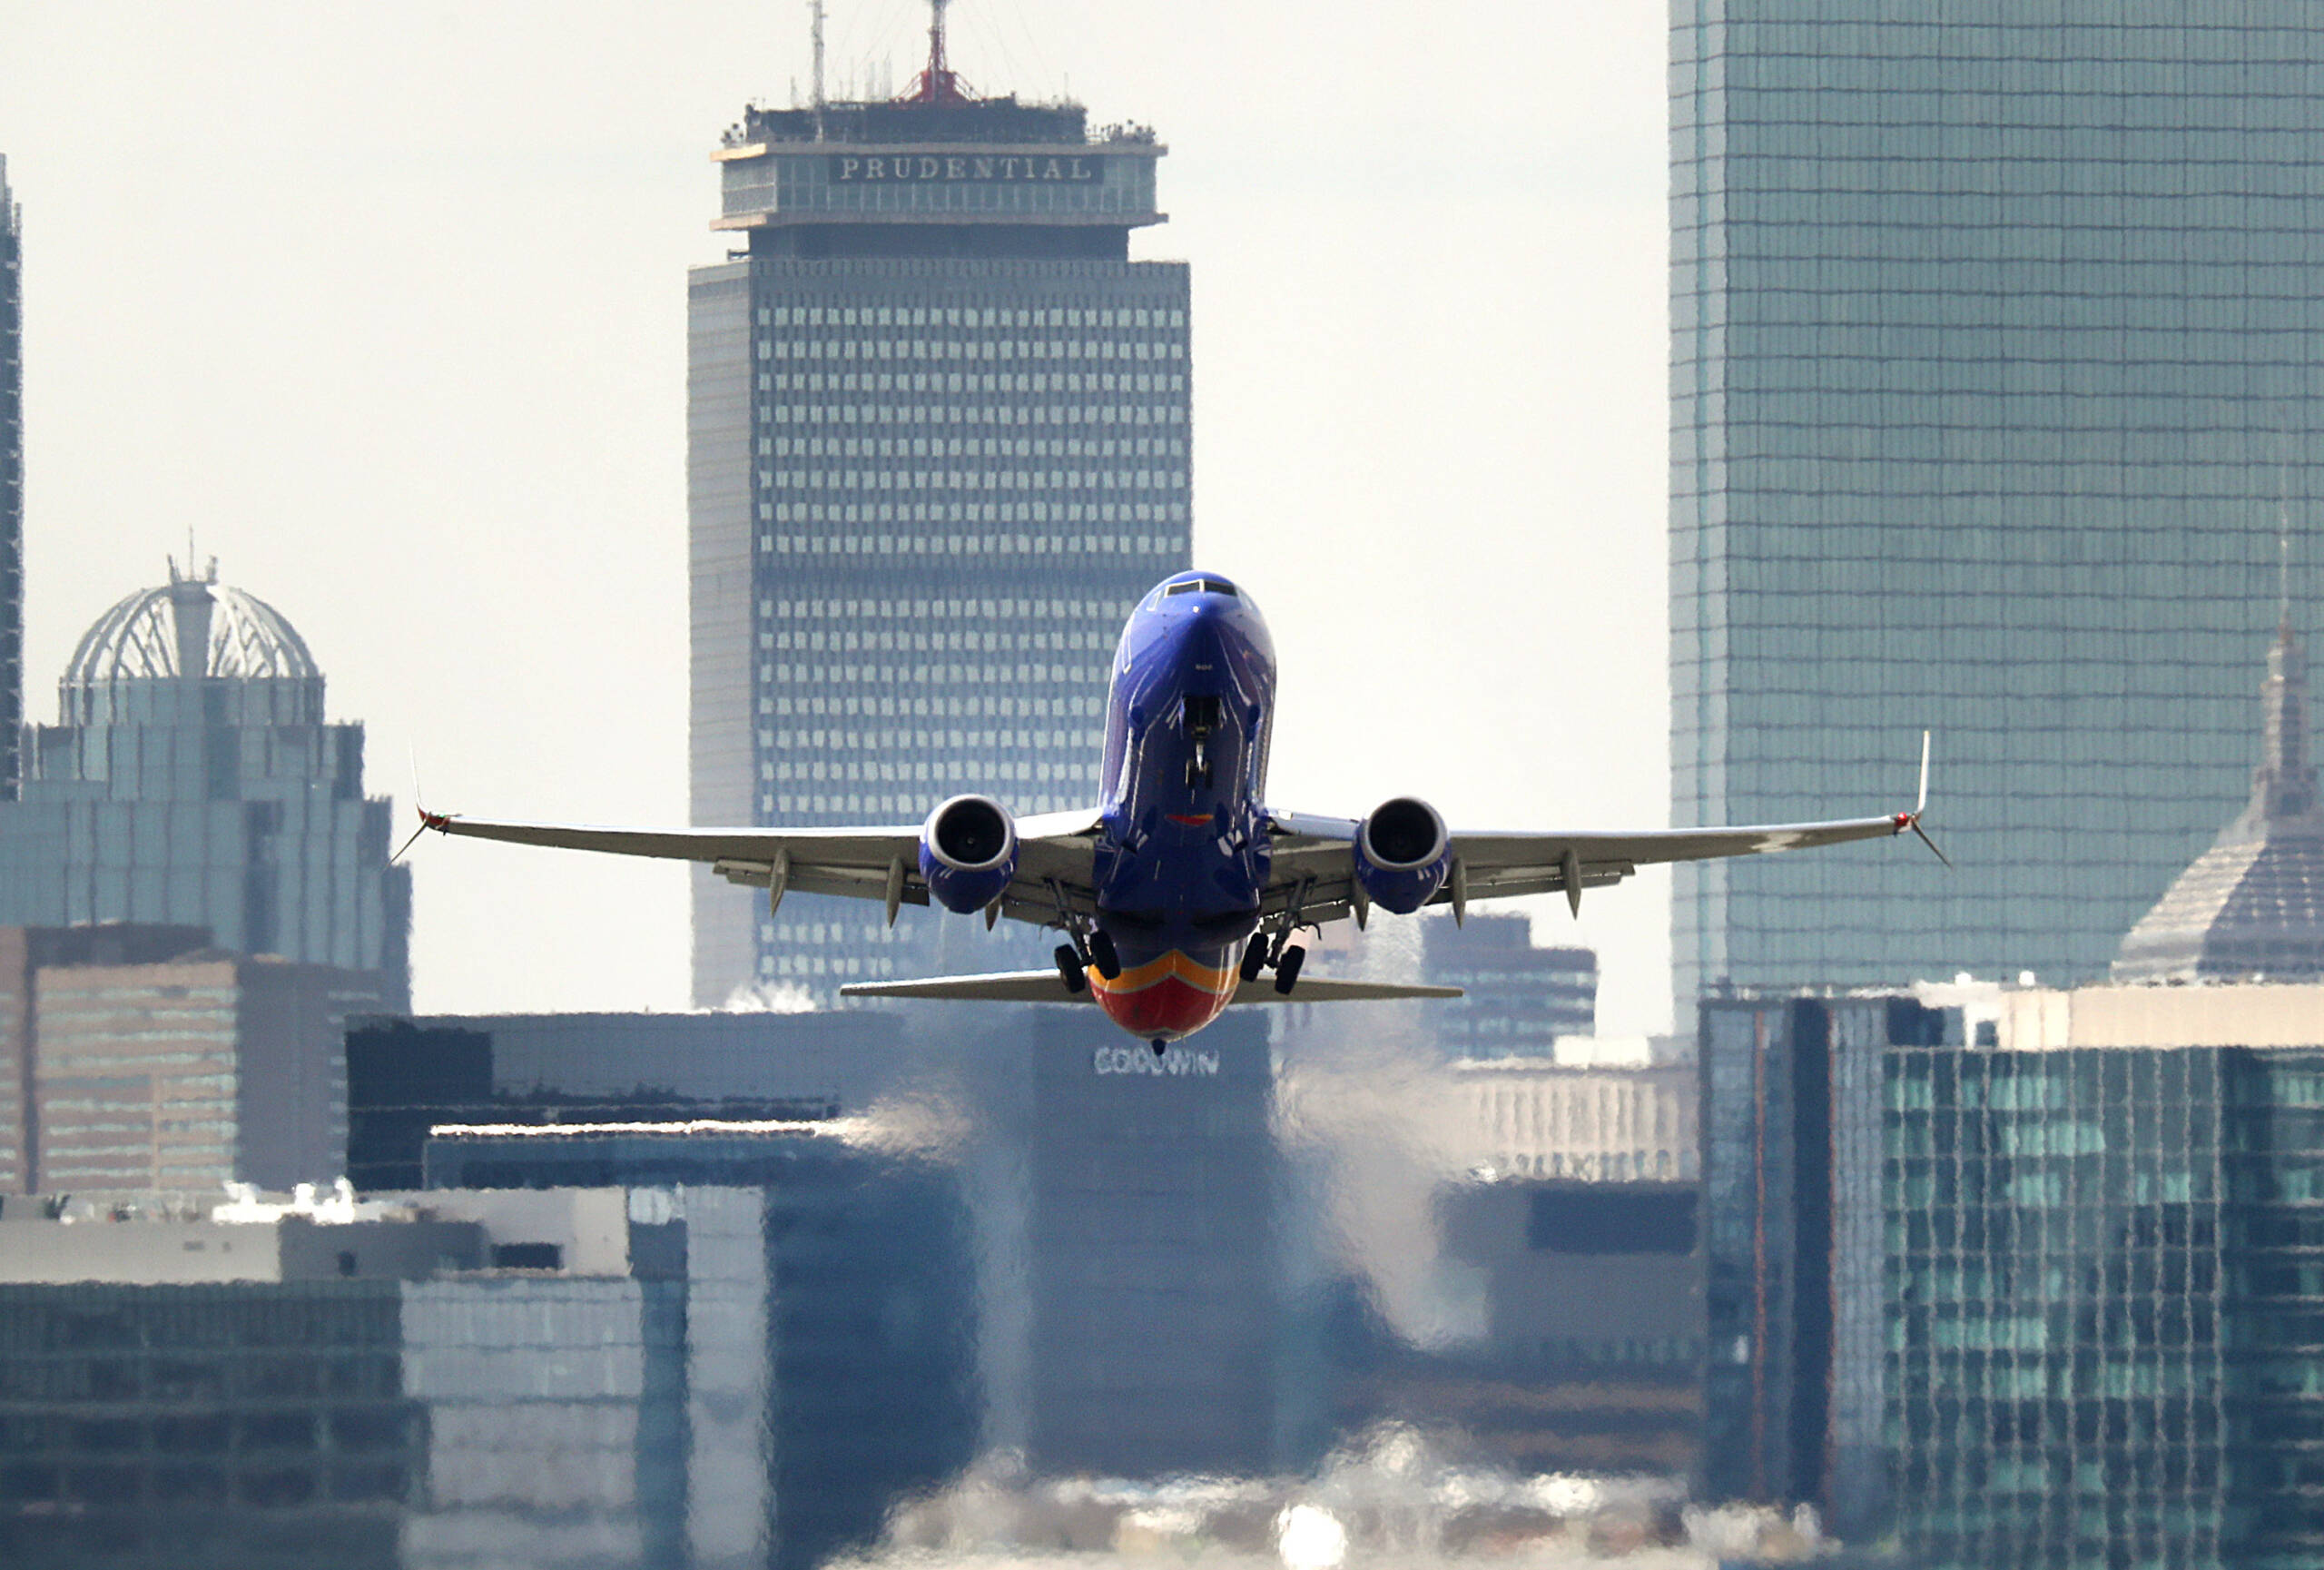 Southwest Airlines caps bookings through Thanksgiving as holiday season looms